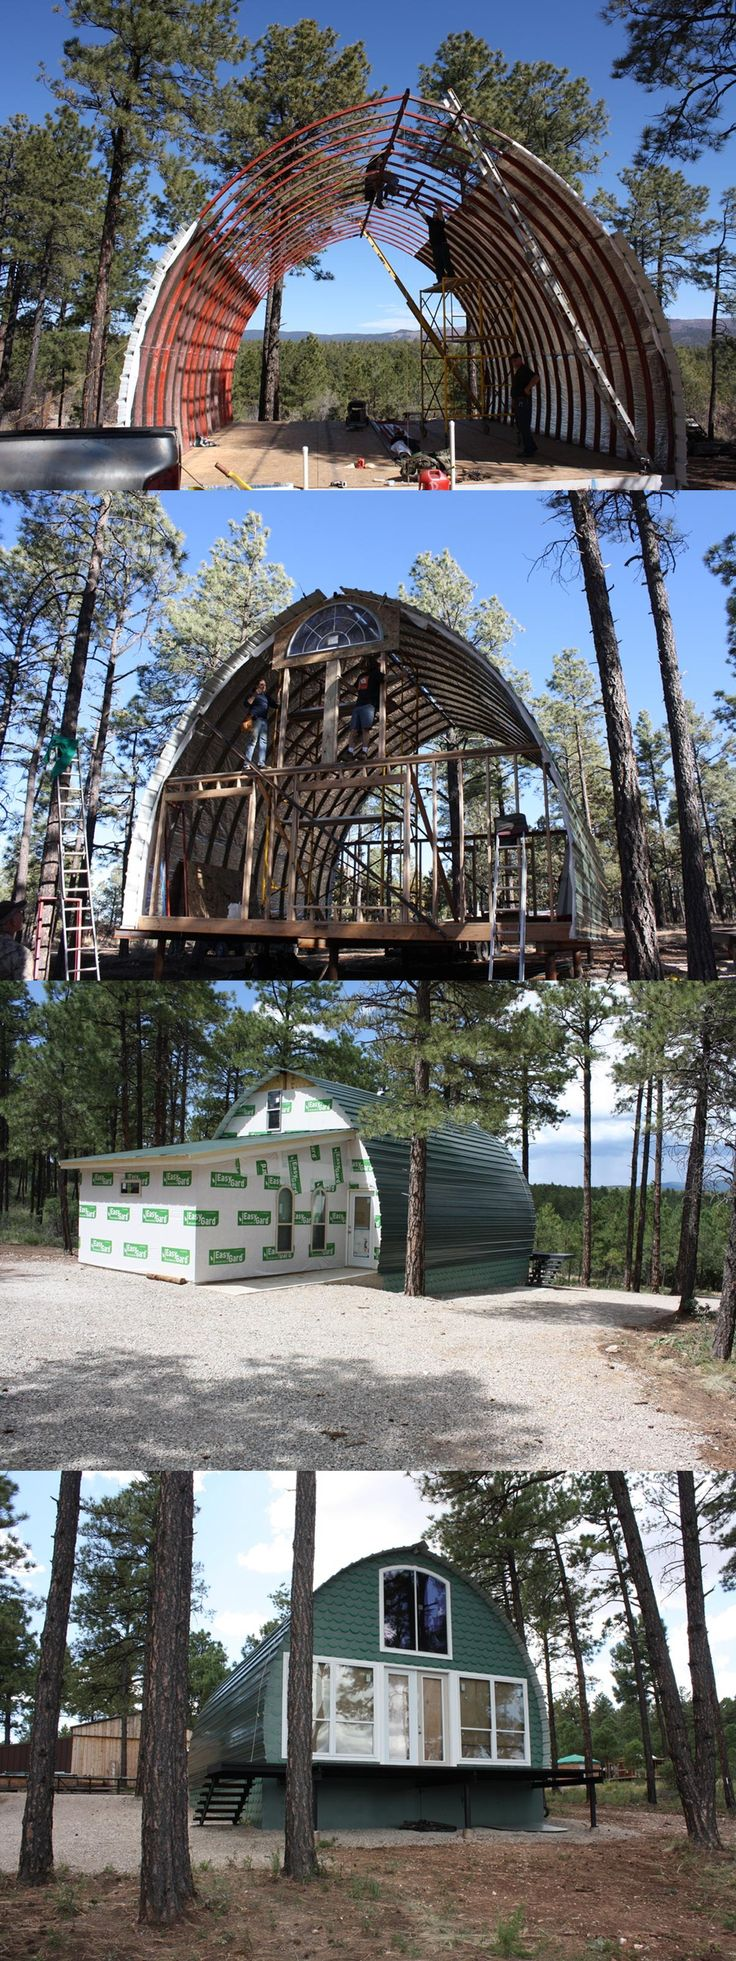 70 Best Arched Cabins Images On Pinterest Quonset Hut